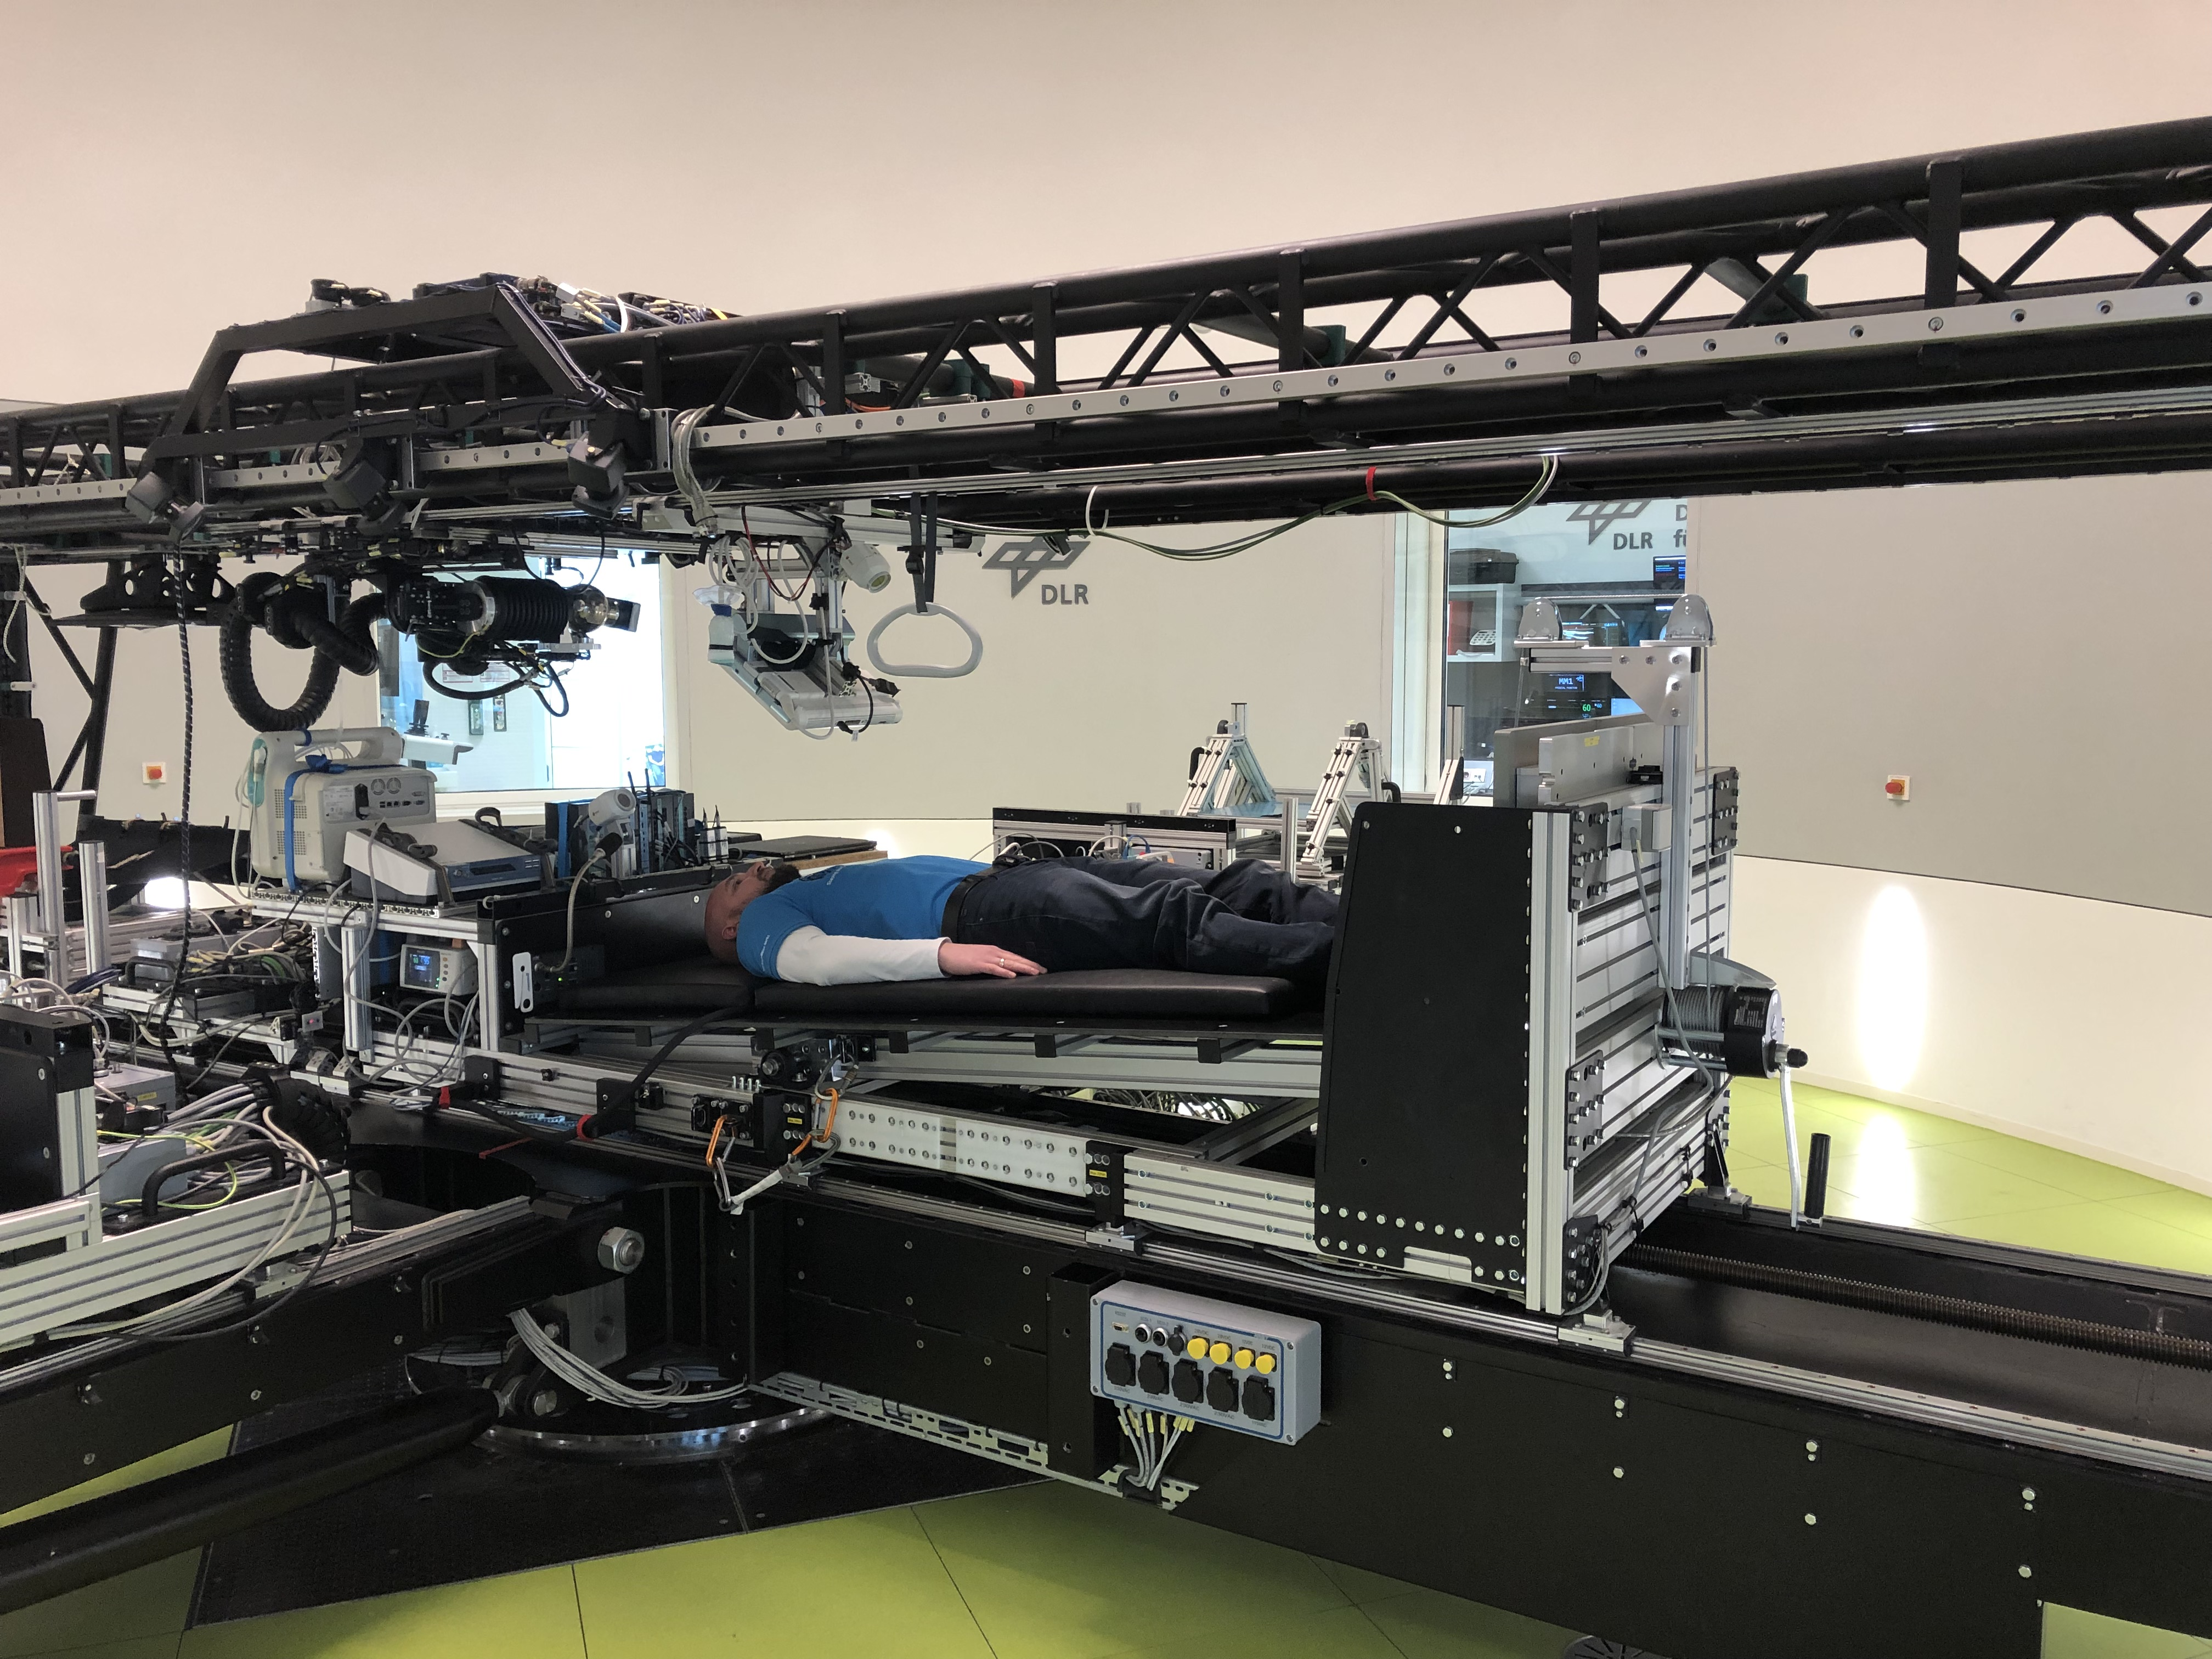 Space in Images - 2019 - 03 - DLR short-arm centrifuge